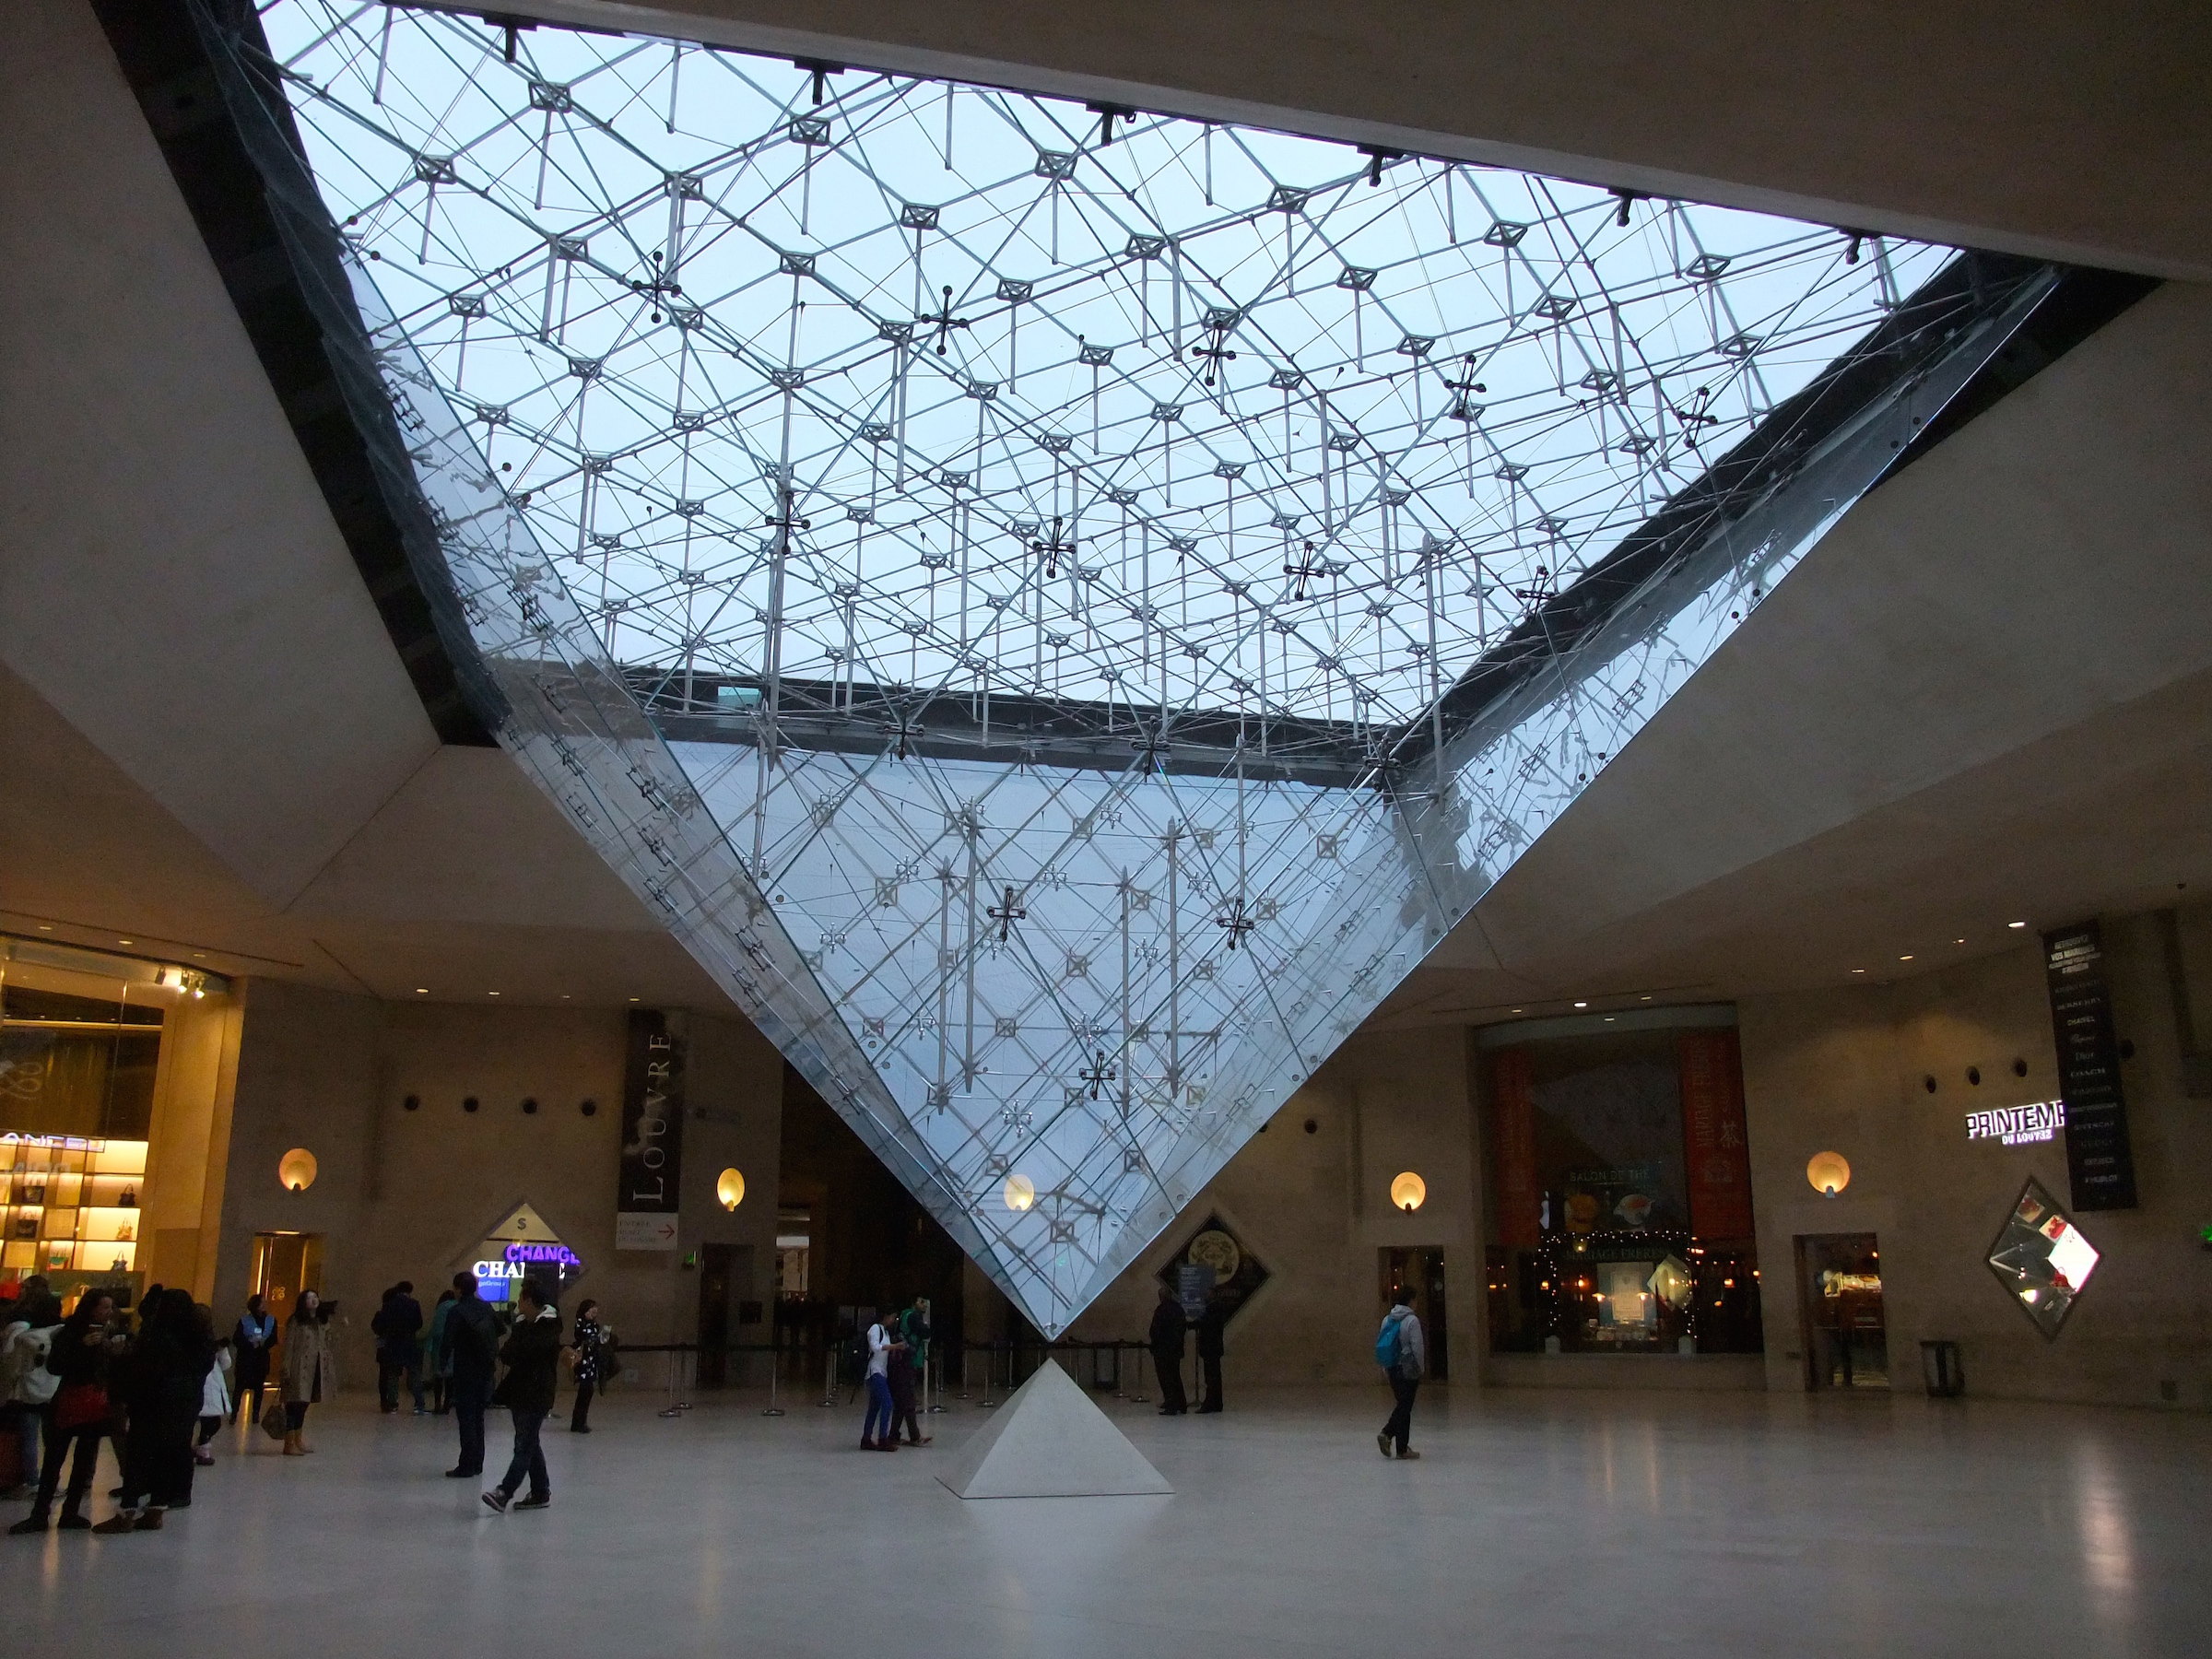 Inside of the shopping center under the  Louvre